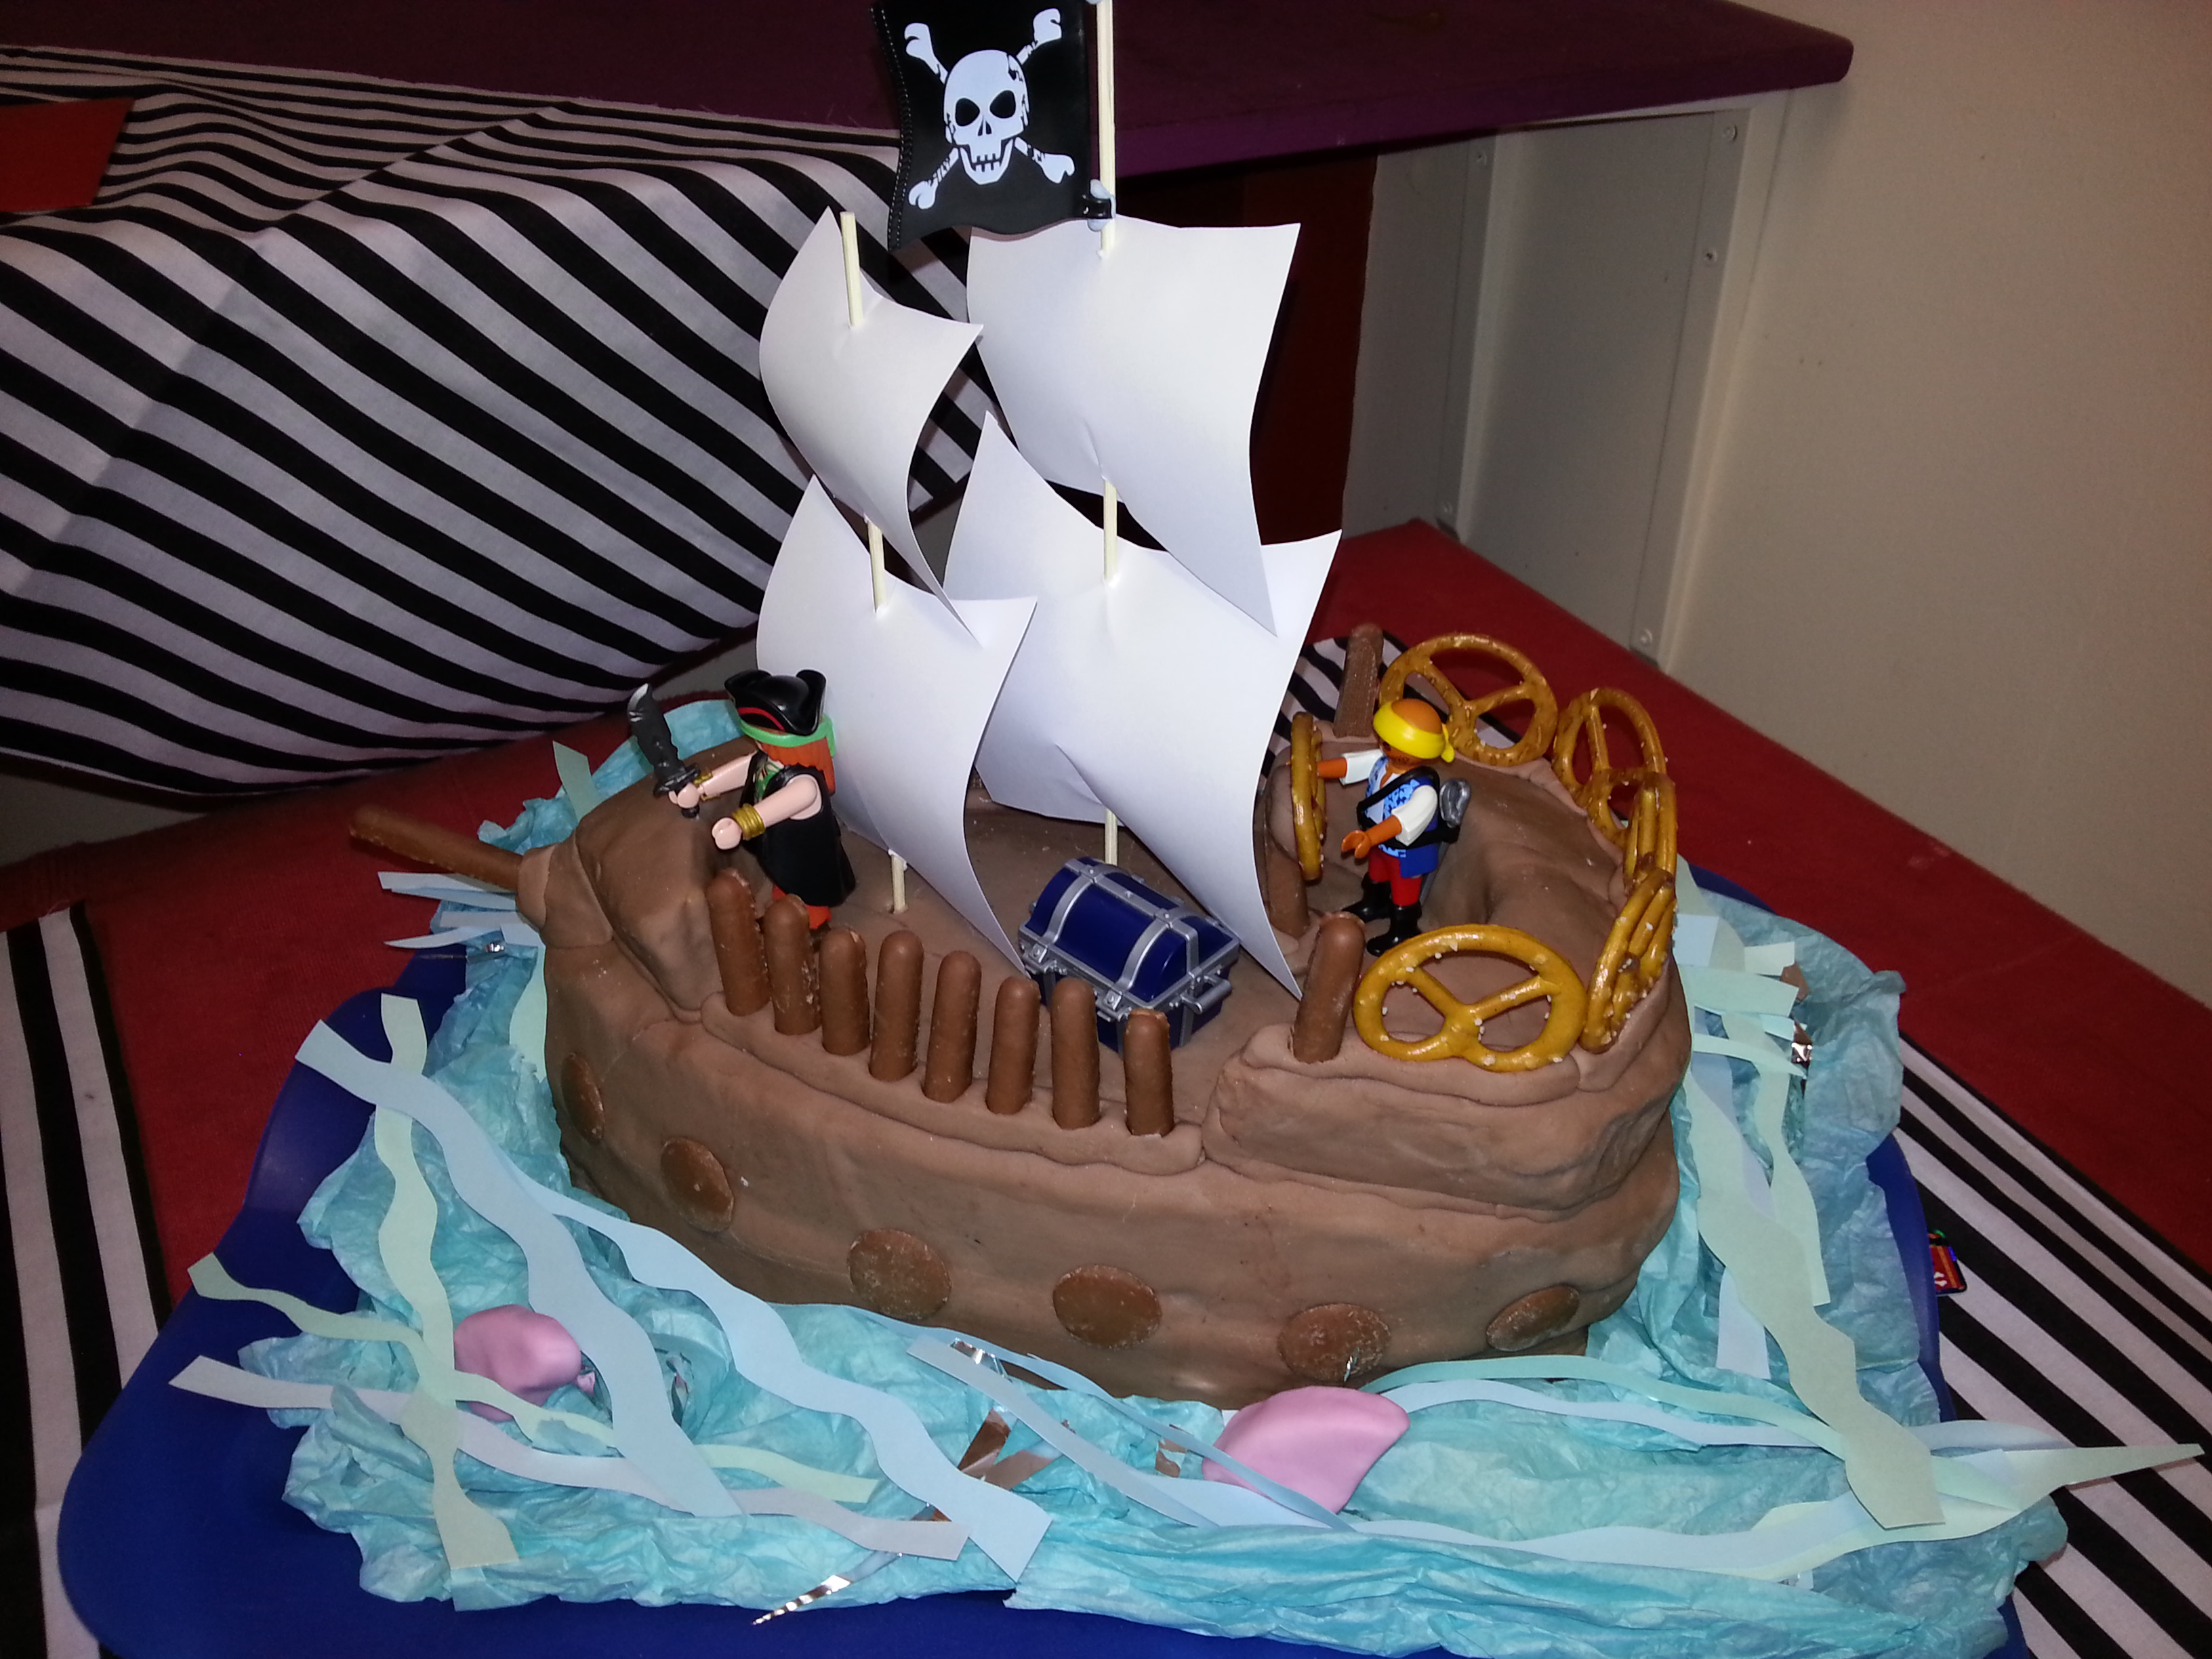 Cake Designs Pirate Ship : Pirate Birthday Cake ( York ) Jolly Good Productions (Blog)